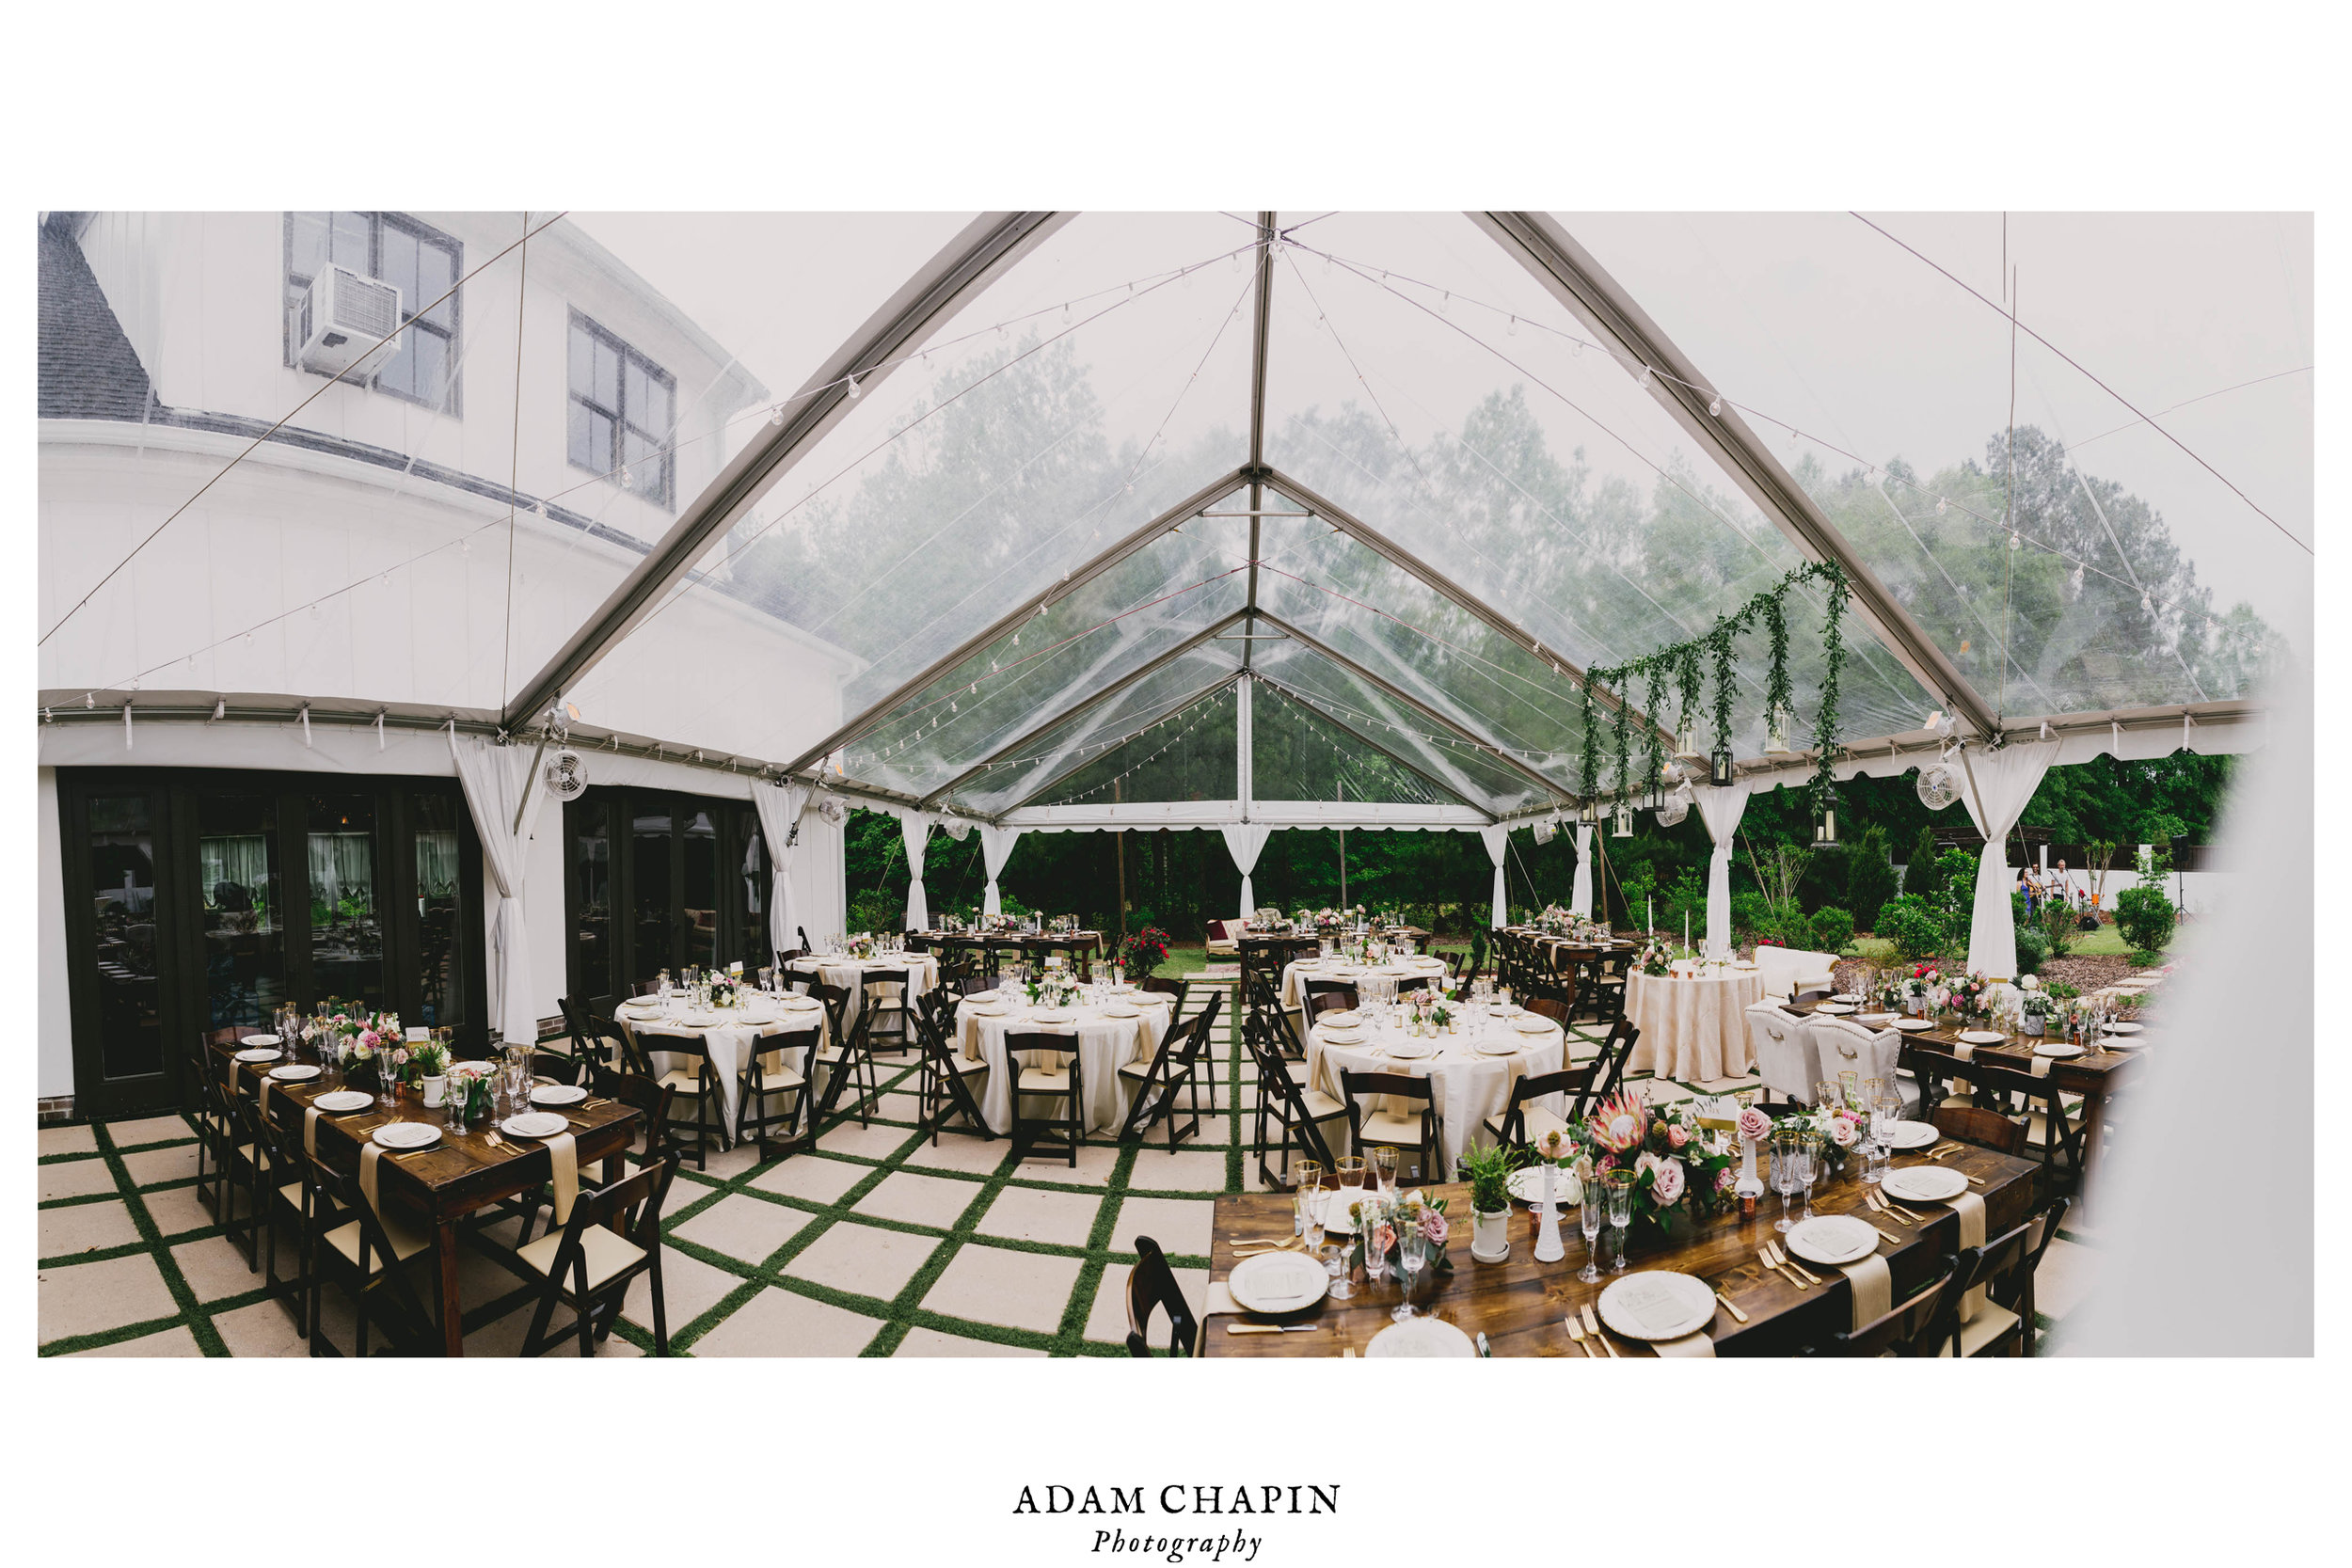 panoramic photo of wedding reception dinner table details and courtyard at the Bradford